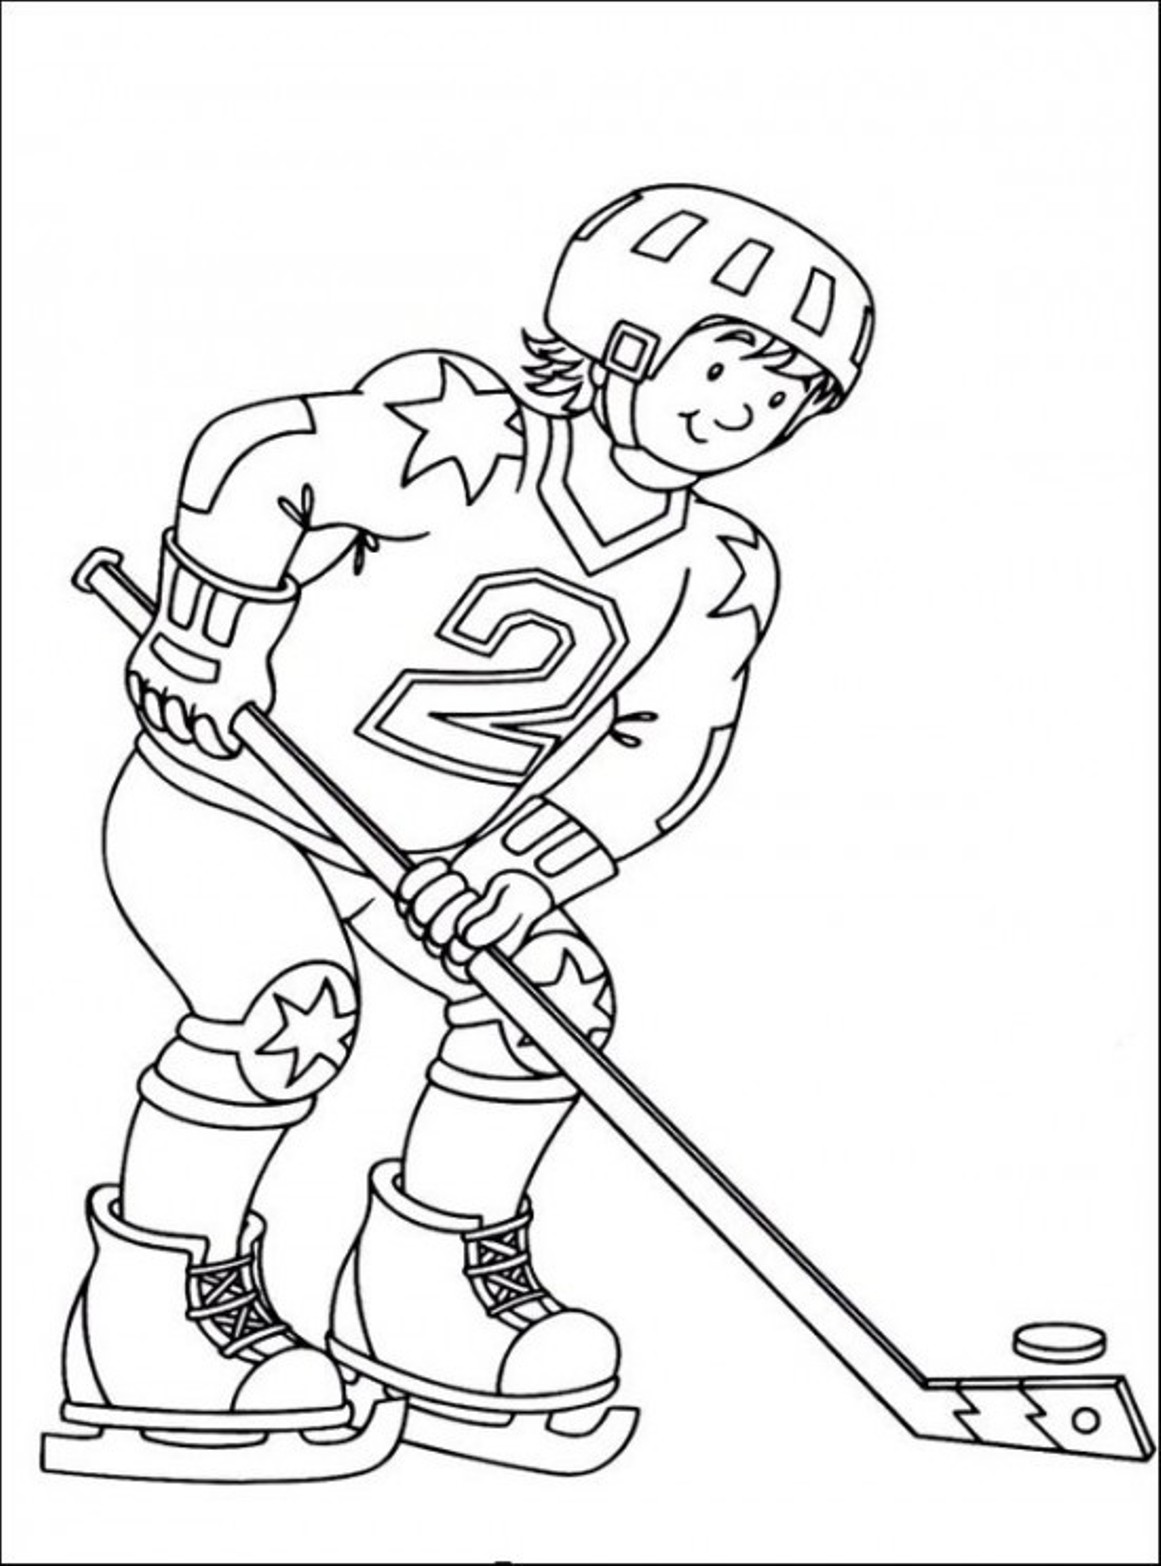 printable hockey coloring pages free printable hockey coloring pages for kids coloring printable hockey pages